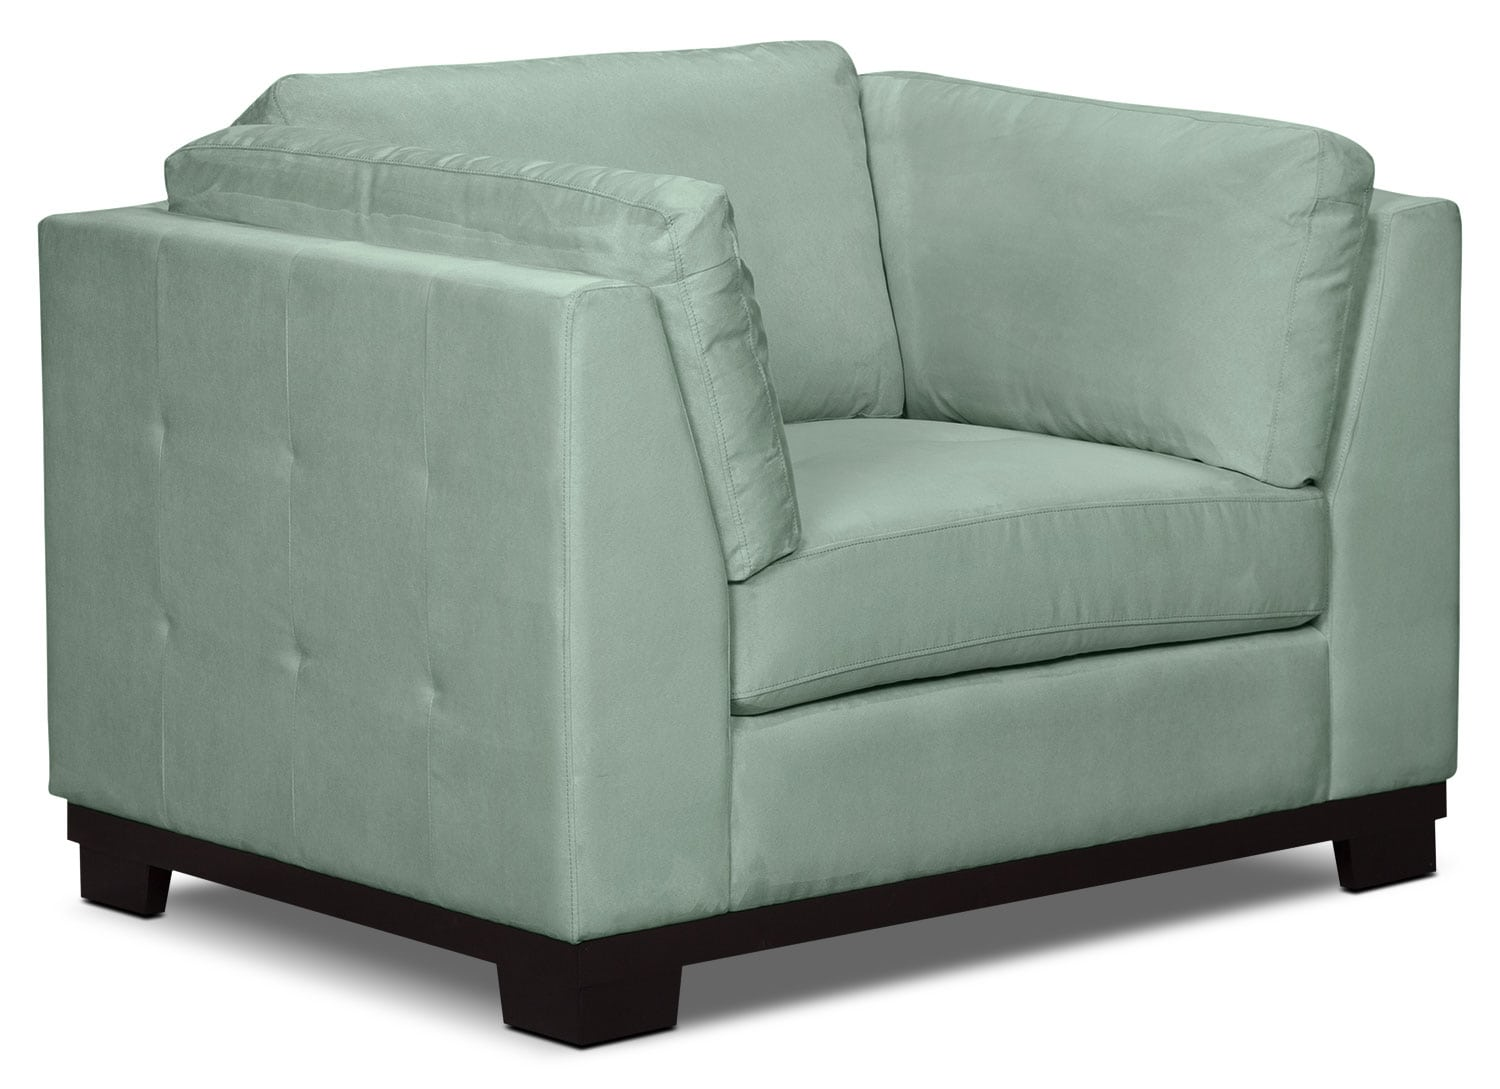 Oakdale Microsuede Loveseat Aqua The Brick